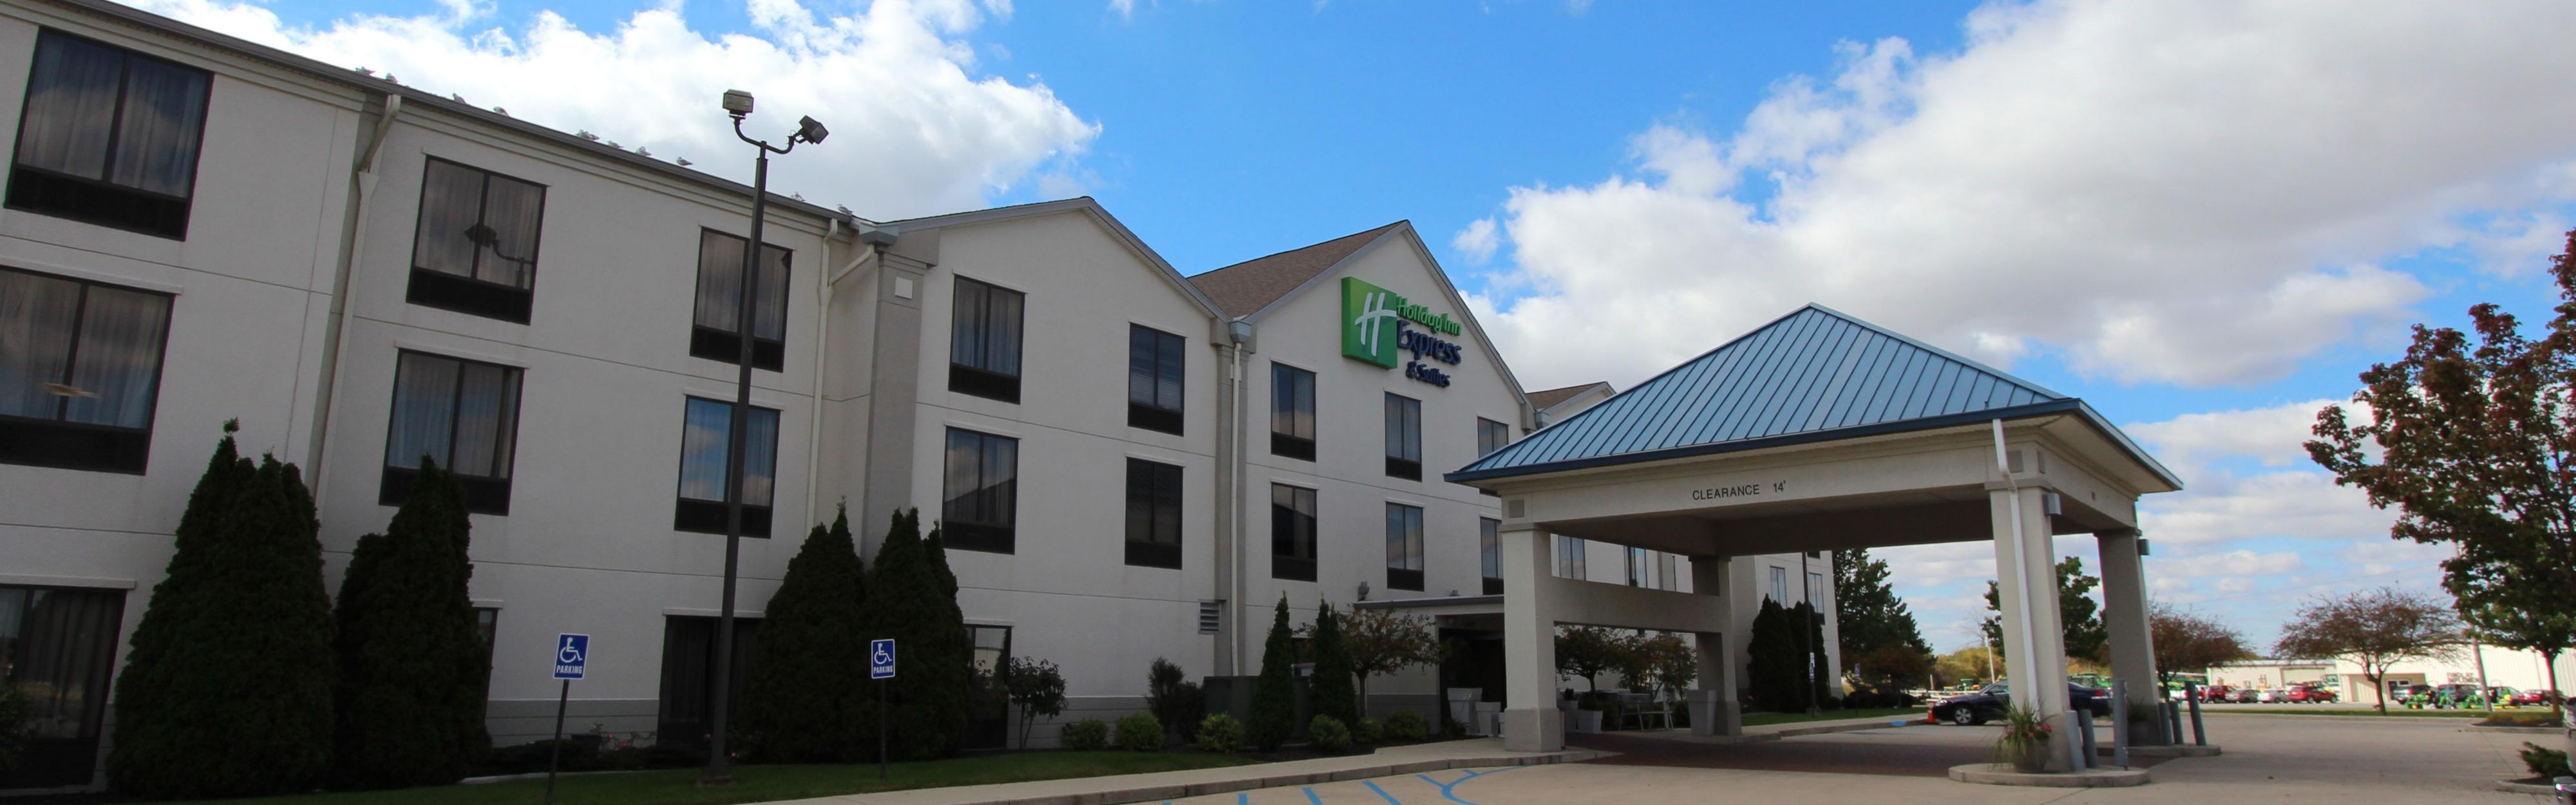 Holiday Inn Express & Suites Findlay image 0